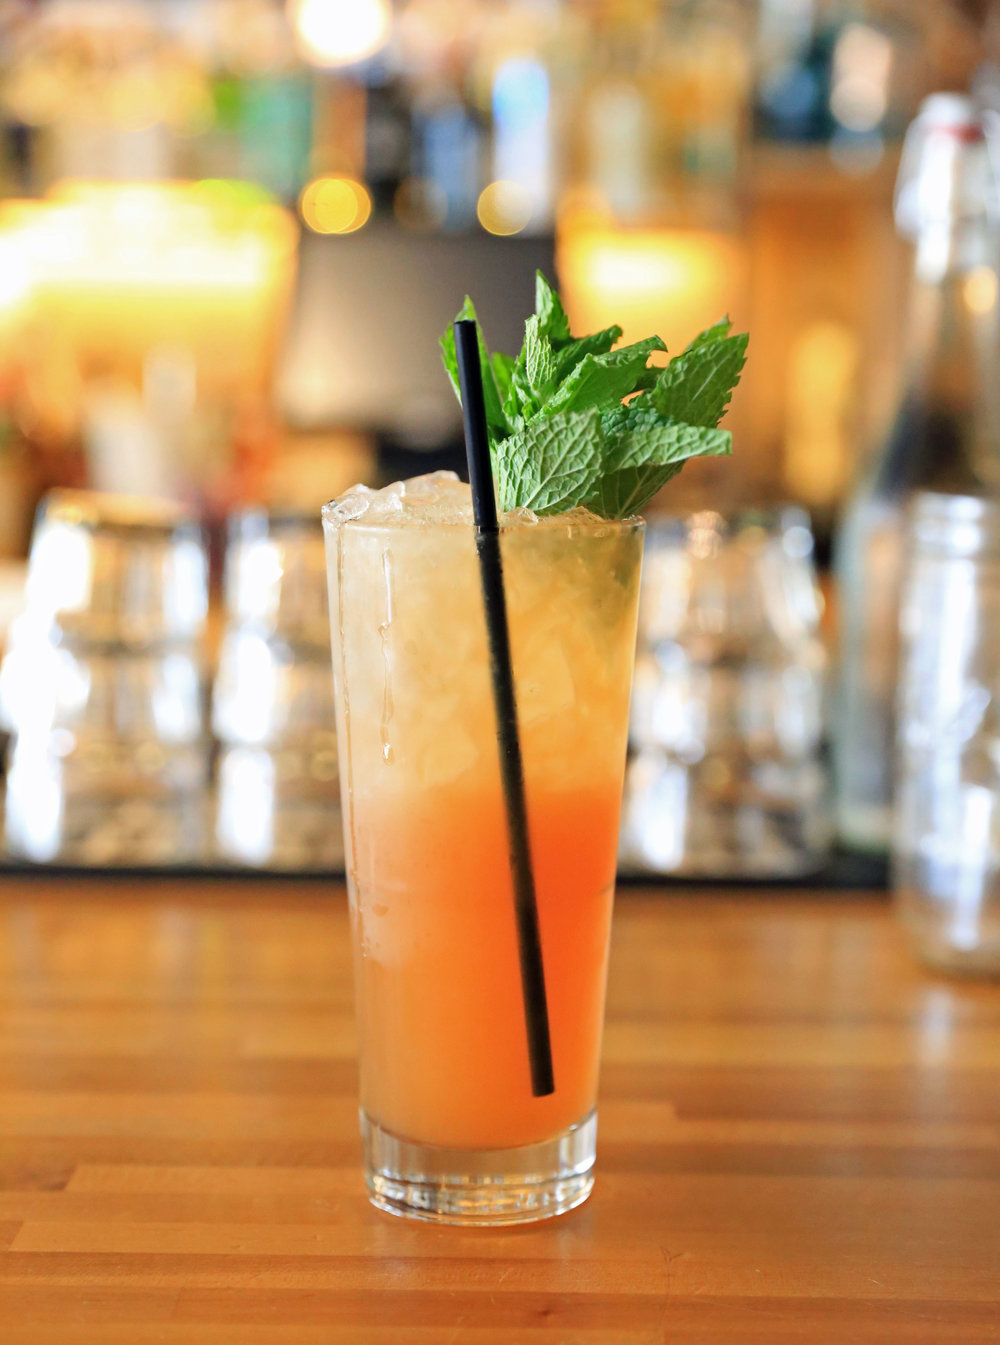 Zombie - Puerto Rican Rum, cinnamon, grenadine, grapefruit, herb saint bitters. One of the most potent drinks on the menu.